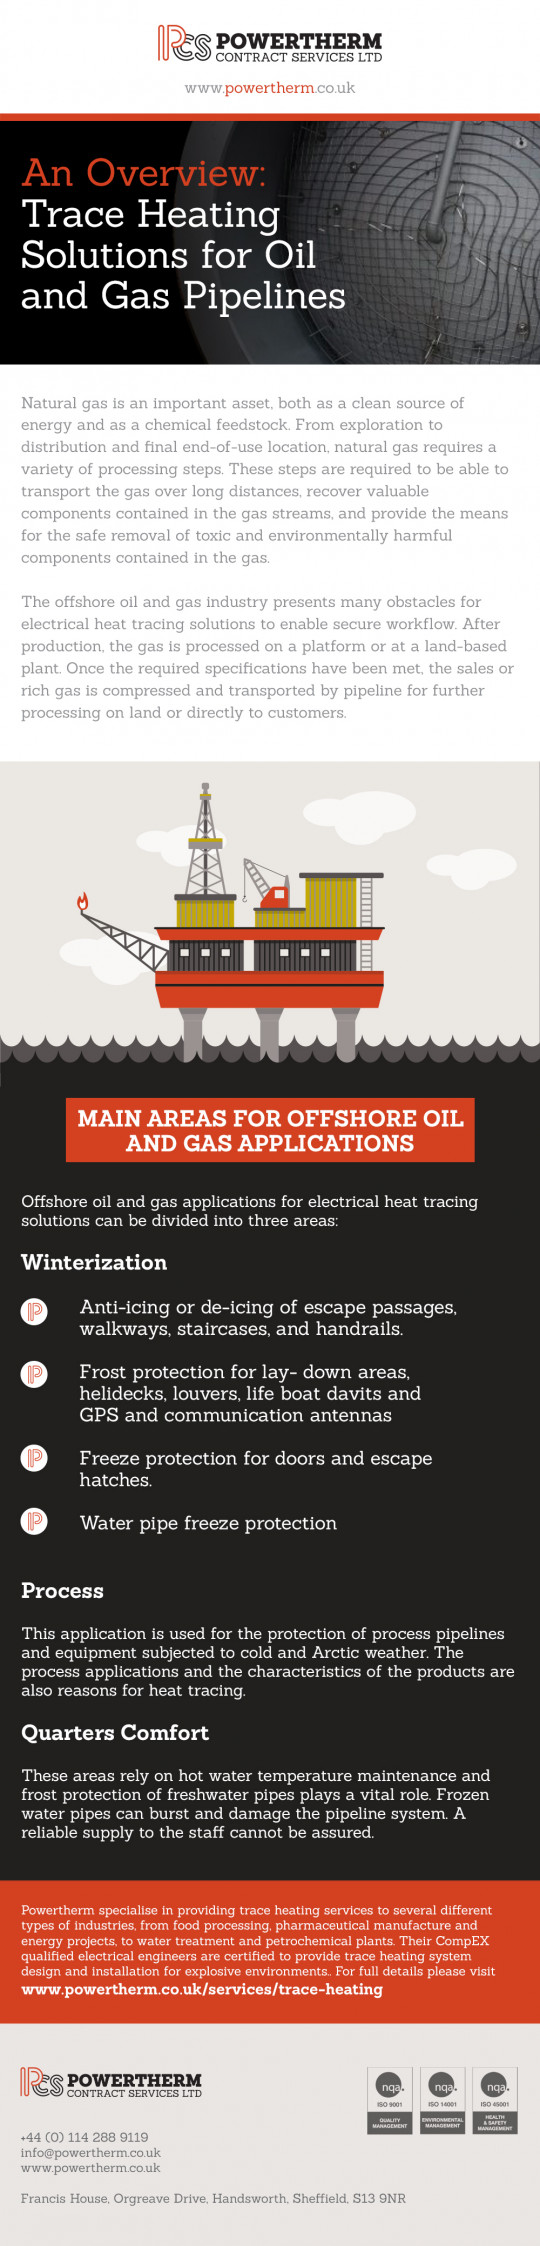 An Overview:Trace HeatingSolutions for Oiland Gas Pipelines